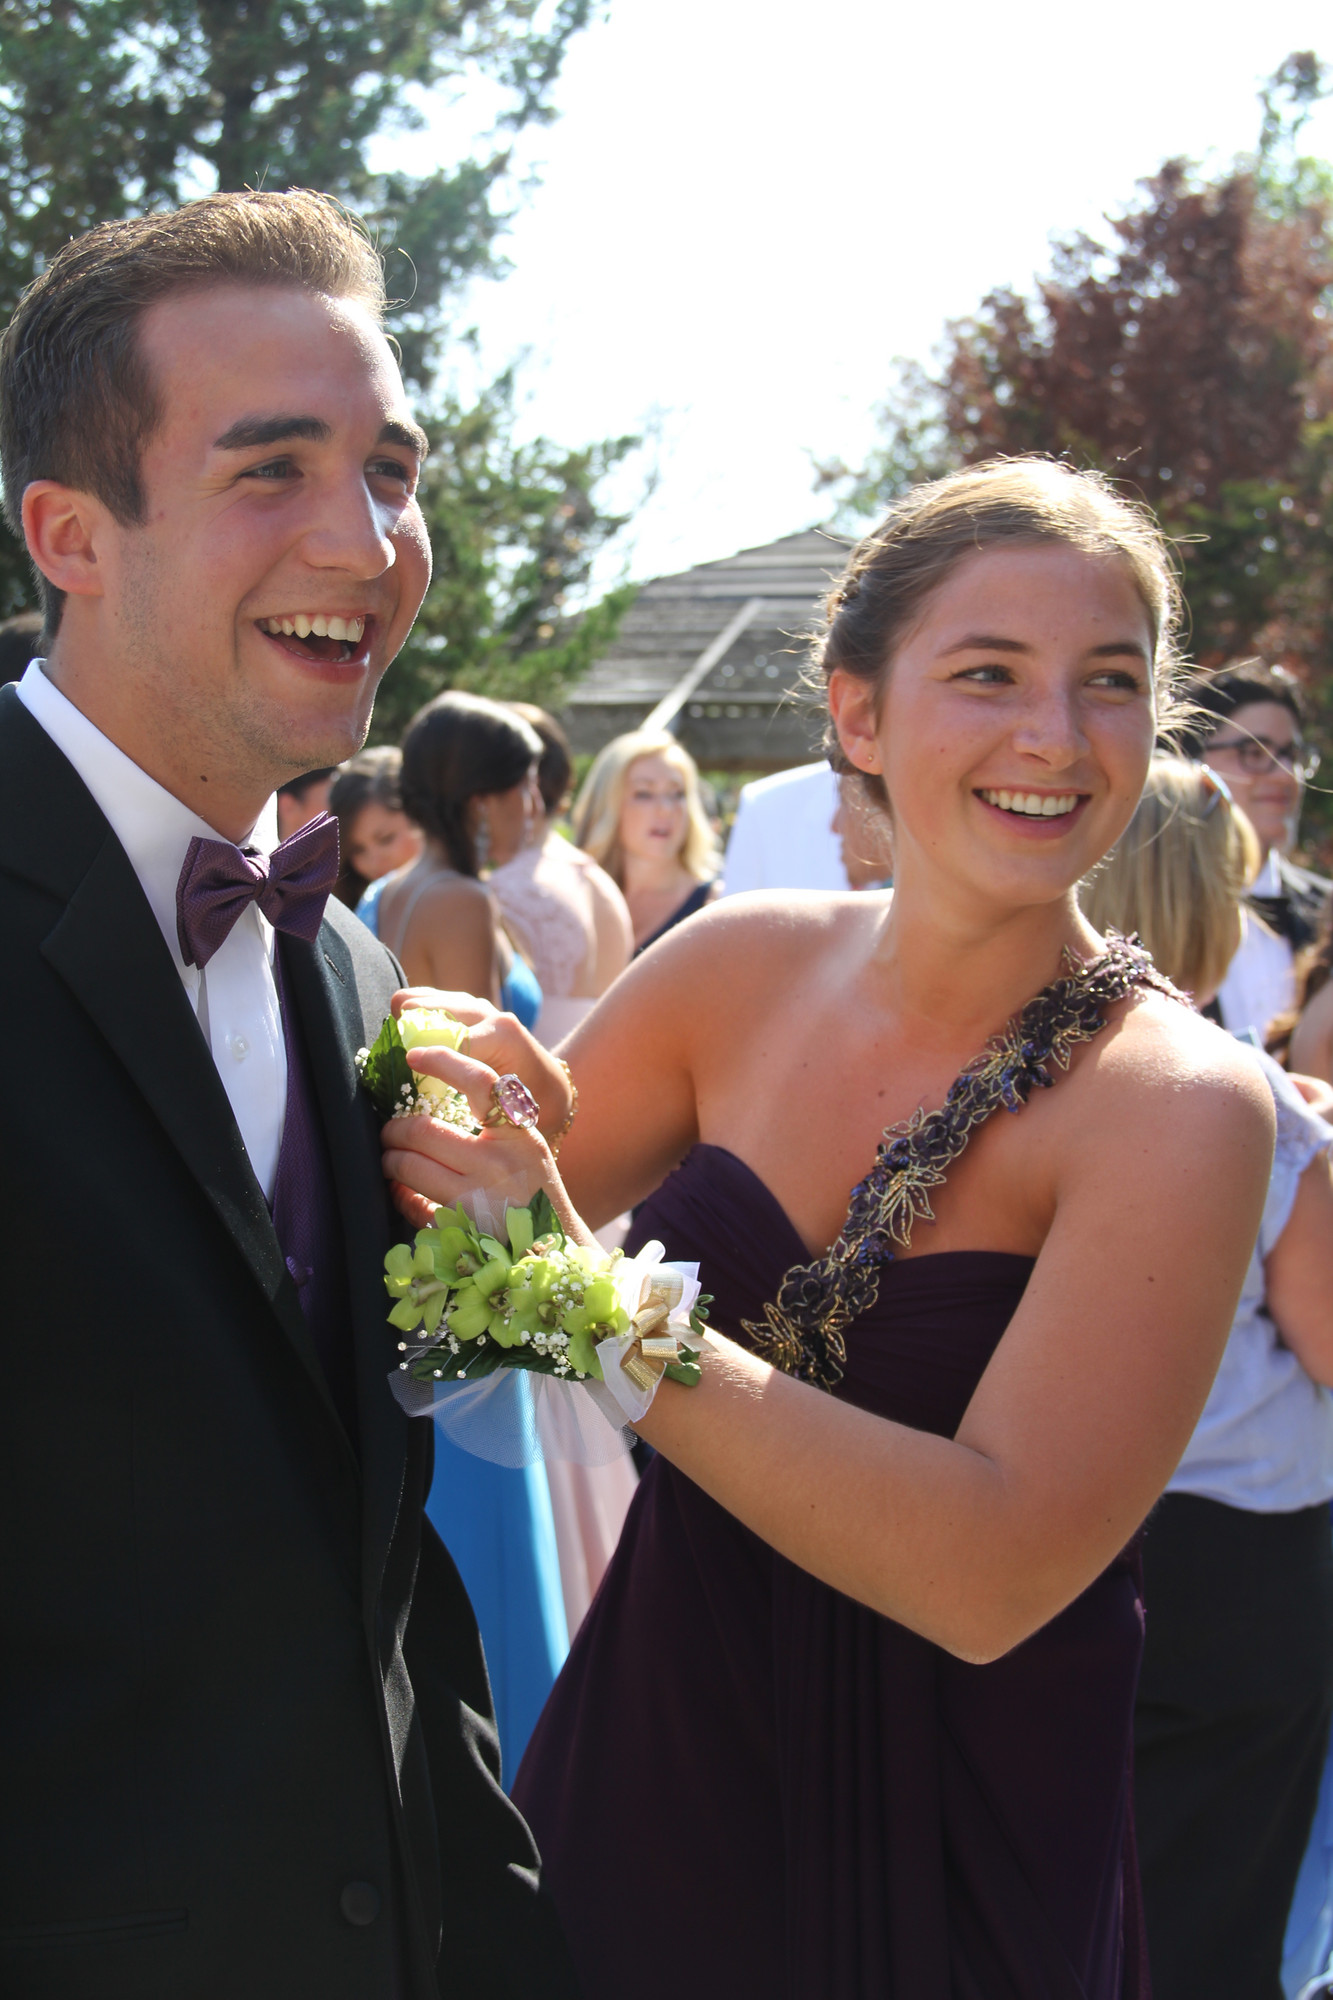 Payton McDermott pinned a boutonniere on Matt Birnbaum.